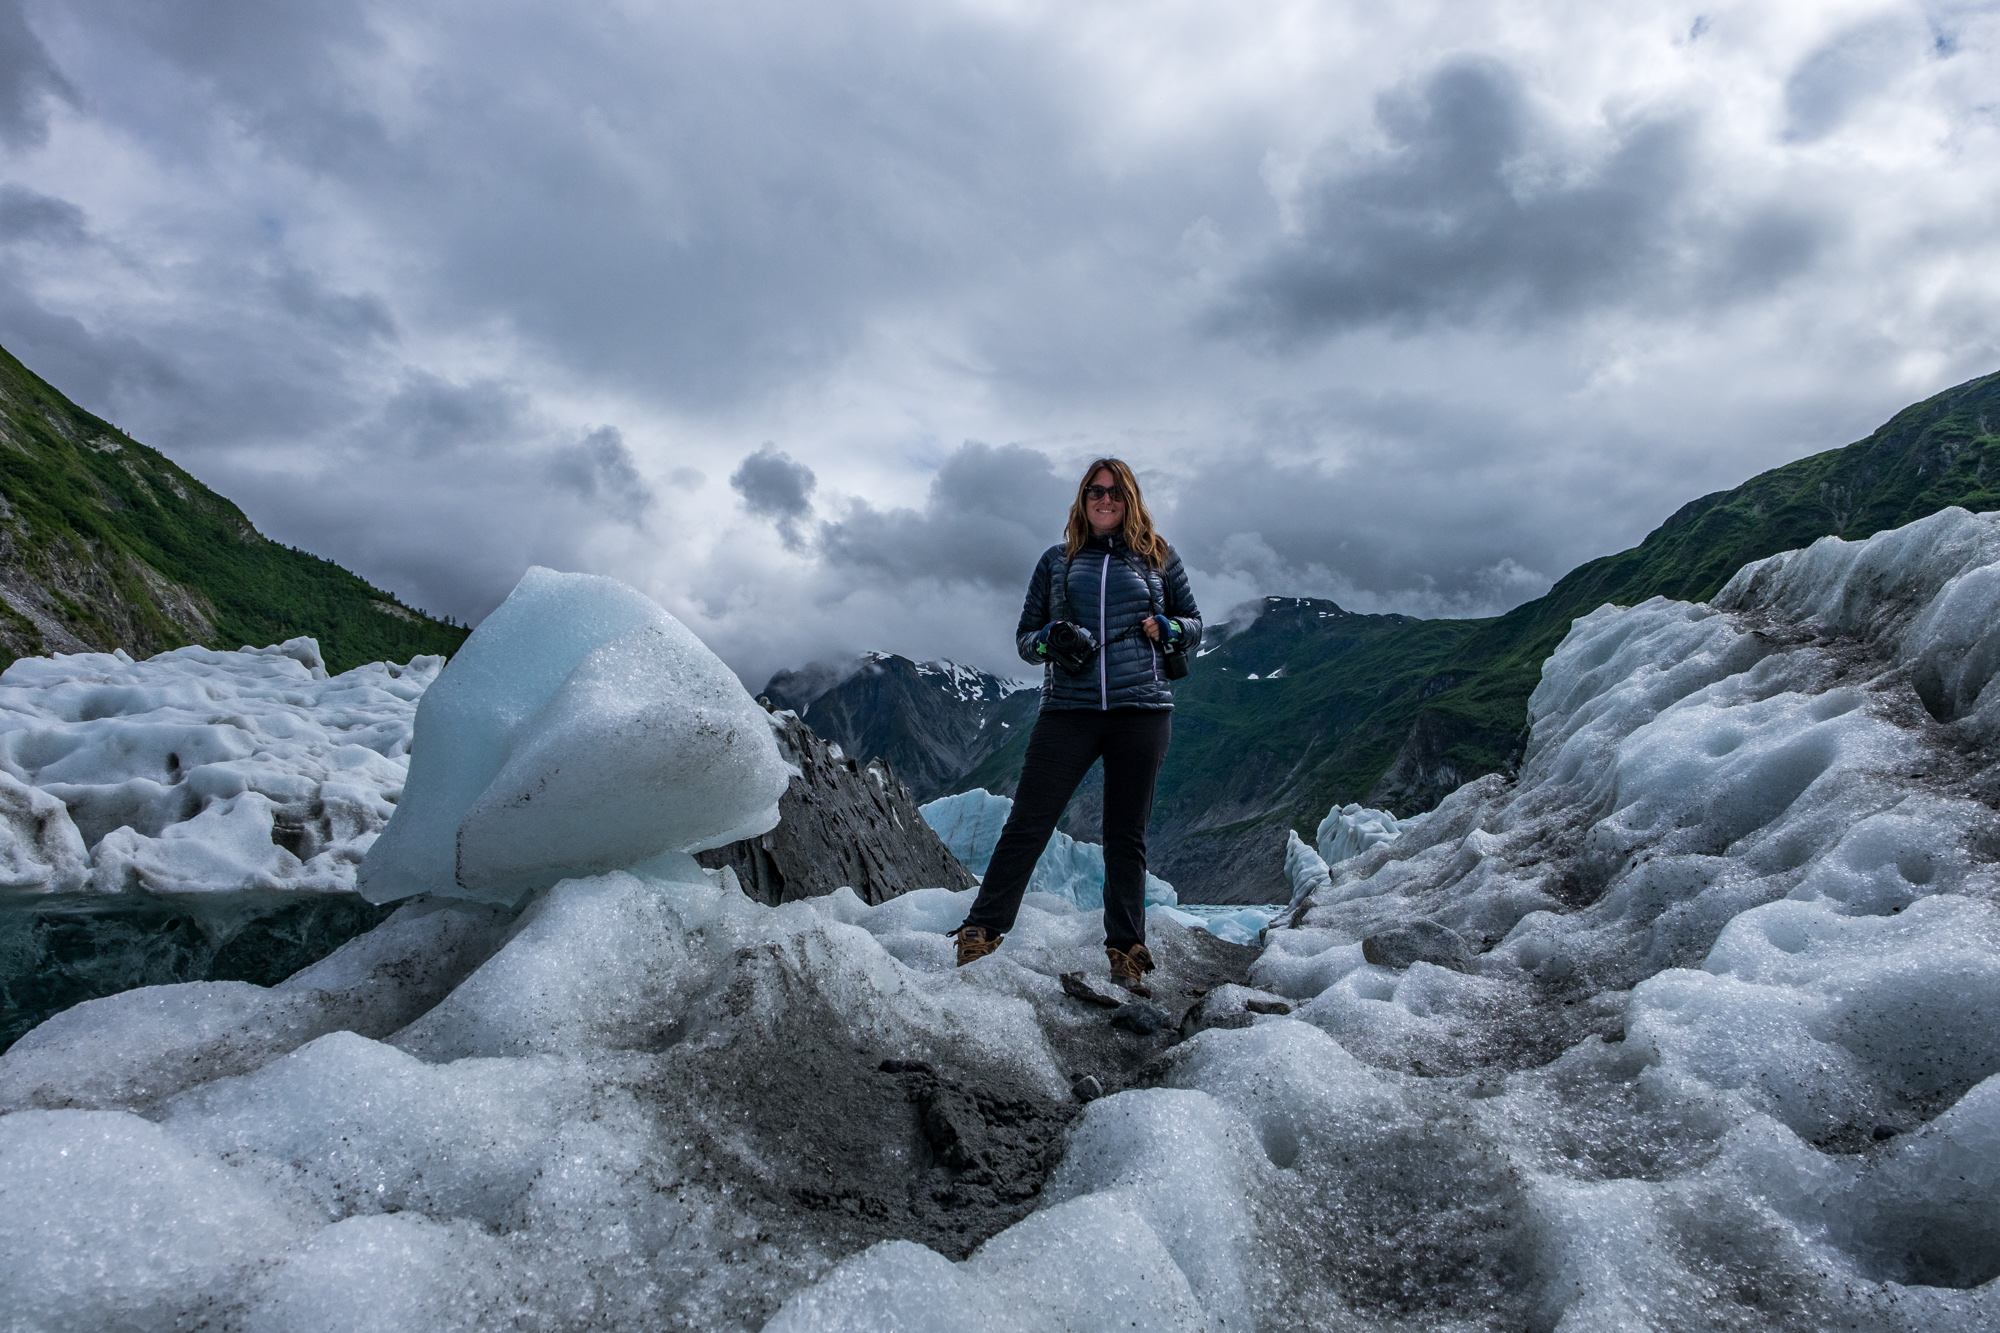 We even got to step on an iceberg, something neither Stef nor I had ever done.